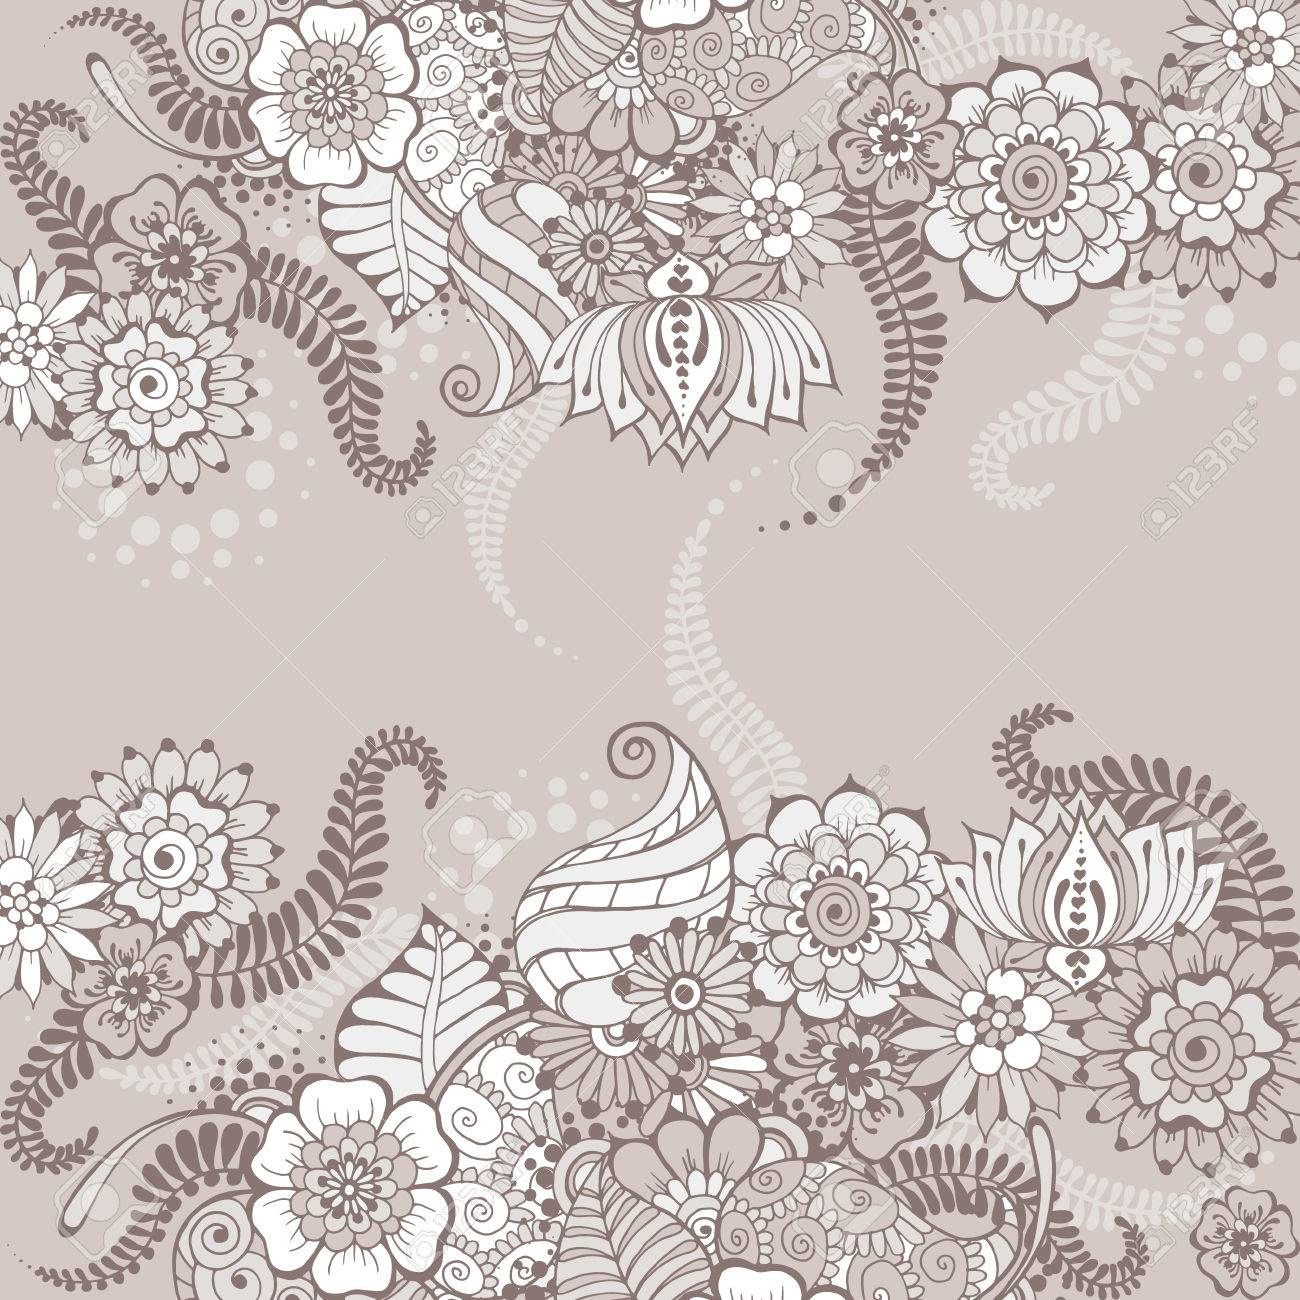 Ornate vintage vector background in mehndi style royalty free stock - Ornate Vector Card Template In Indian Mehndi Style Hand Drawn Floral Grey Background Invitation